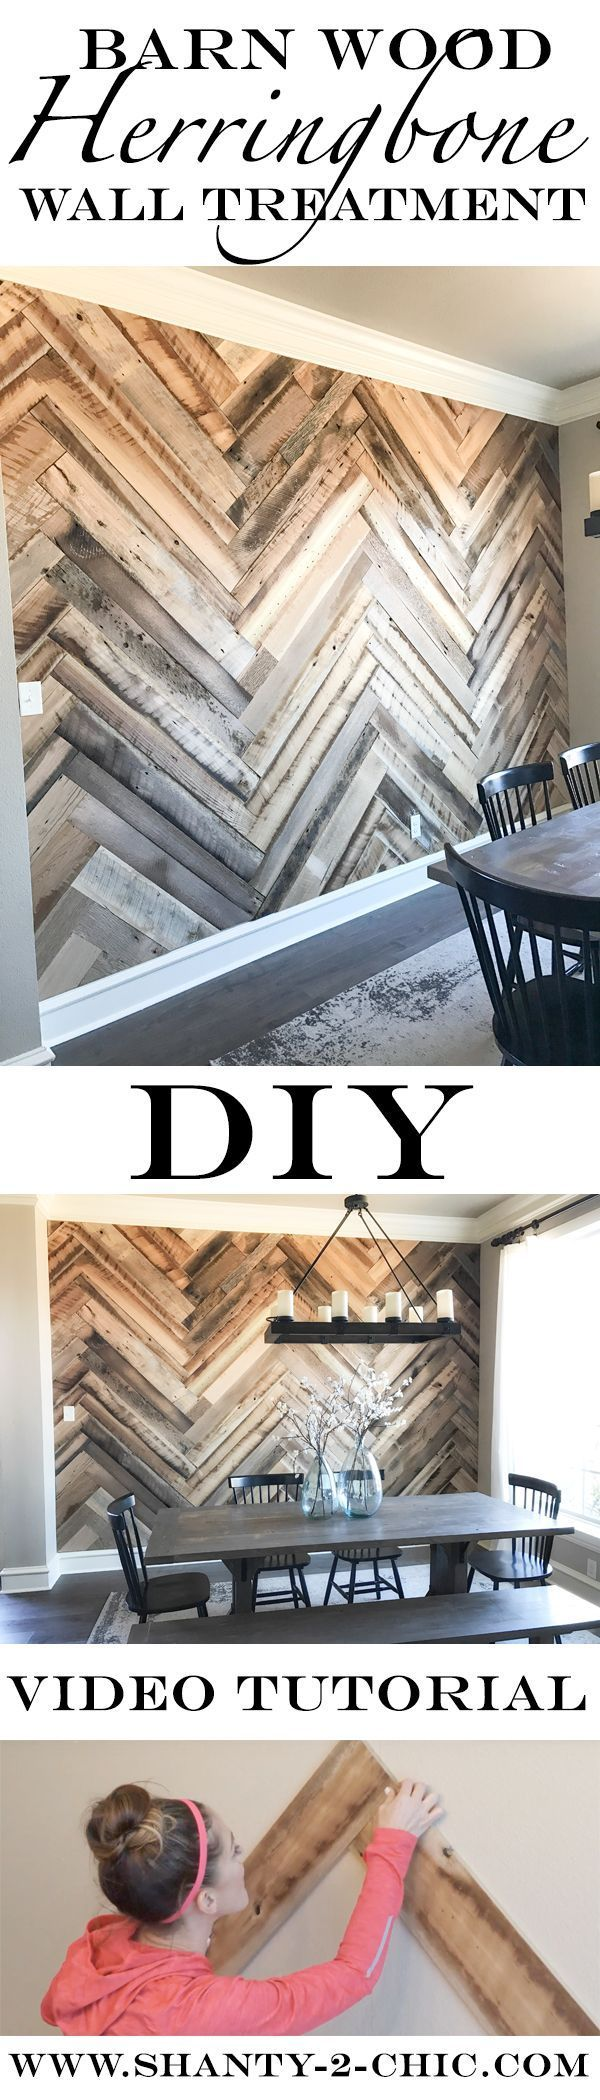 Build this Reclaimed Barn Wood Herringbone Wall Treatment with the easy-to-follow video tutorial from http://www.shanty-2-chic.com ! This barn wood is from Reclaimed DesignWorks. It has been cleaned and milled, bug and mold-free, tested for lead-based paint, packaged in bundles and ready to use in your home! It's the perfect barn wood for wall treatments and furniture building!